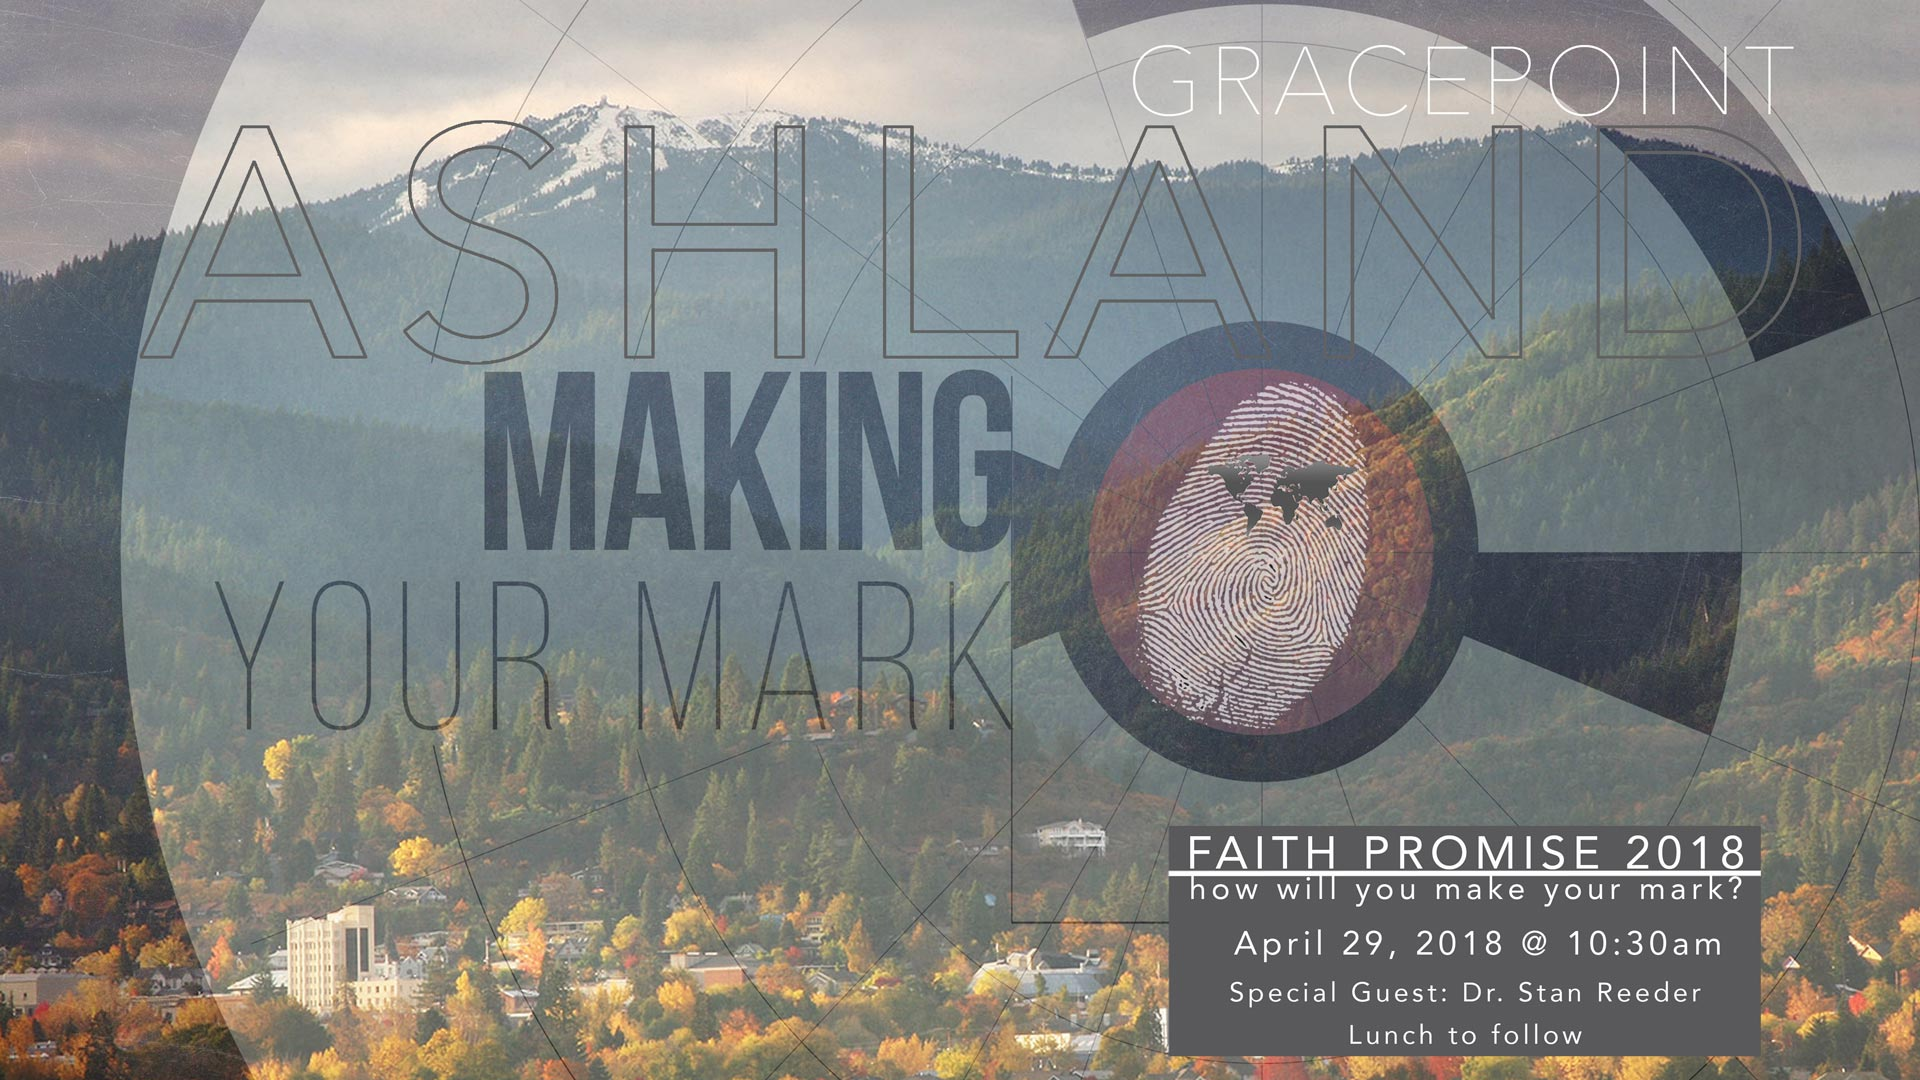 2018 Faith Promise Making Your Mark